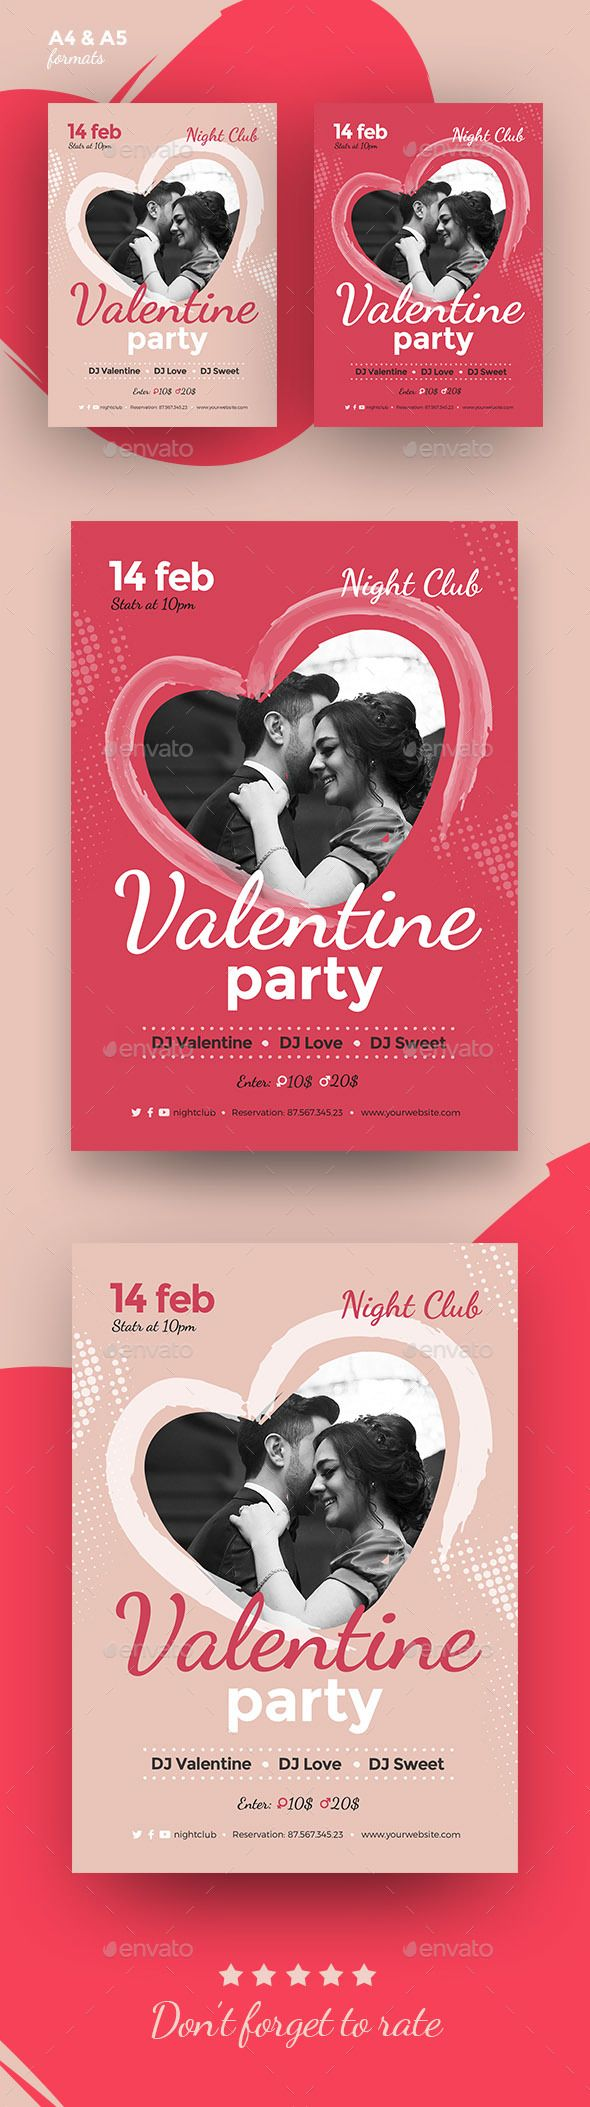 valentines day flyer poster event template ai illustrator - Valentine Poster